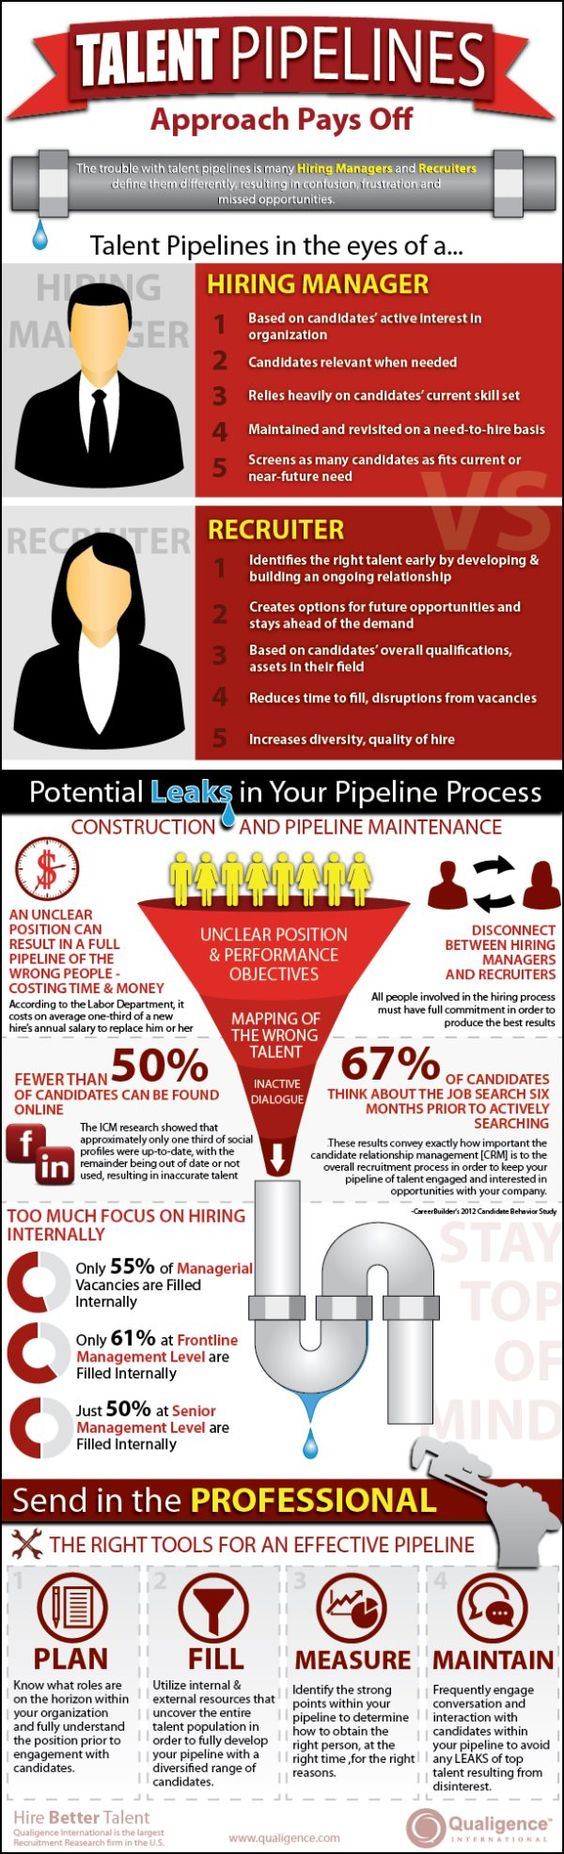 How to Develop Successful Talent Pipelines [infographic]